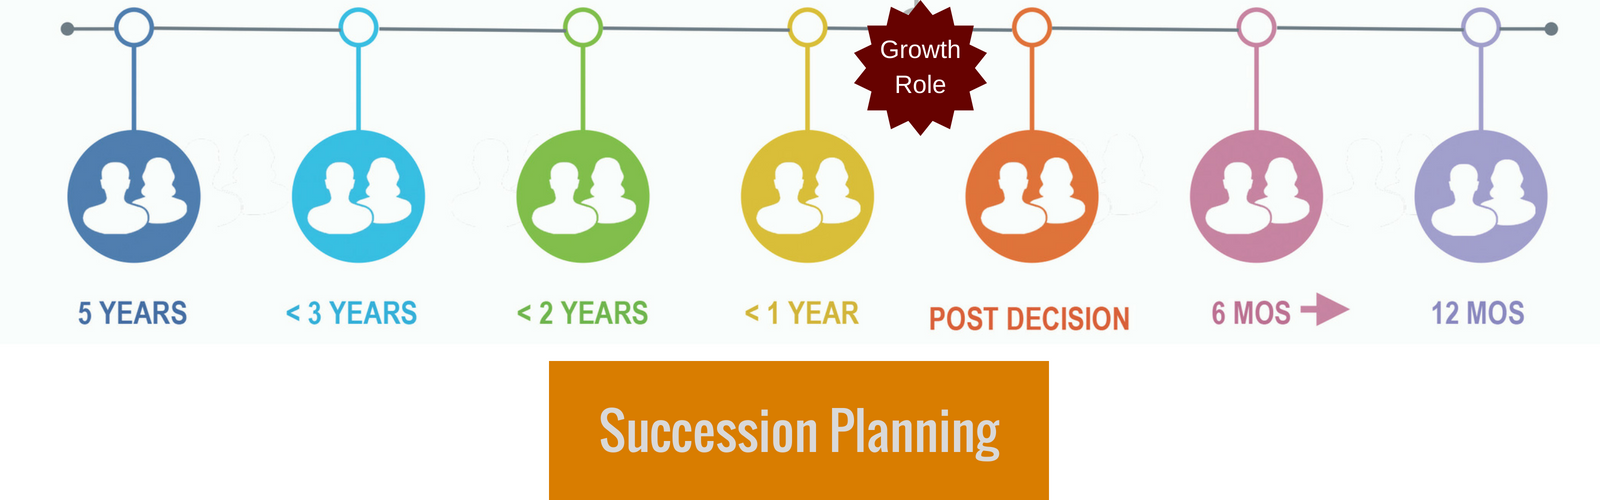 Growth clipart succession planning. On demand experts for